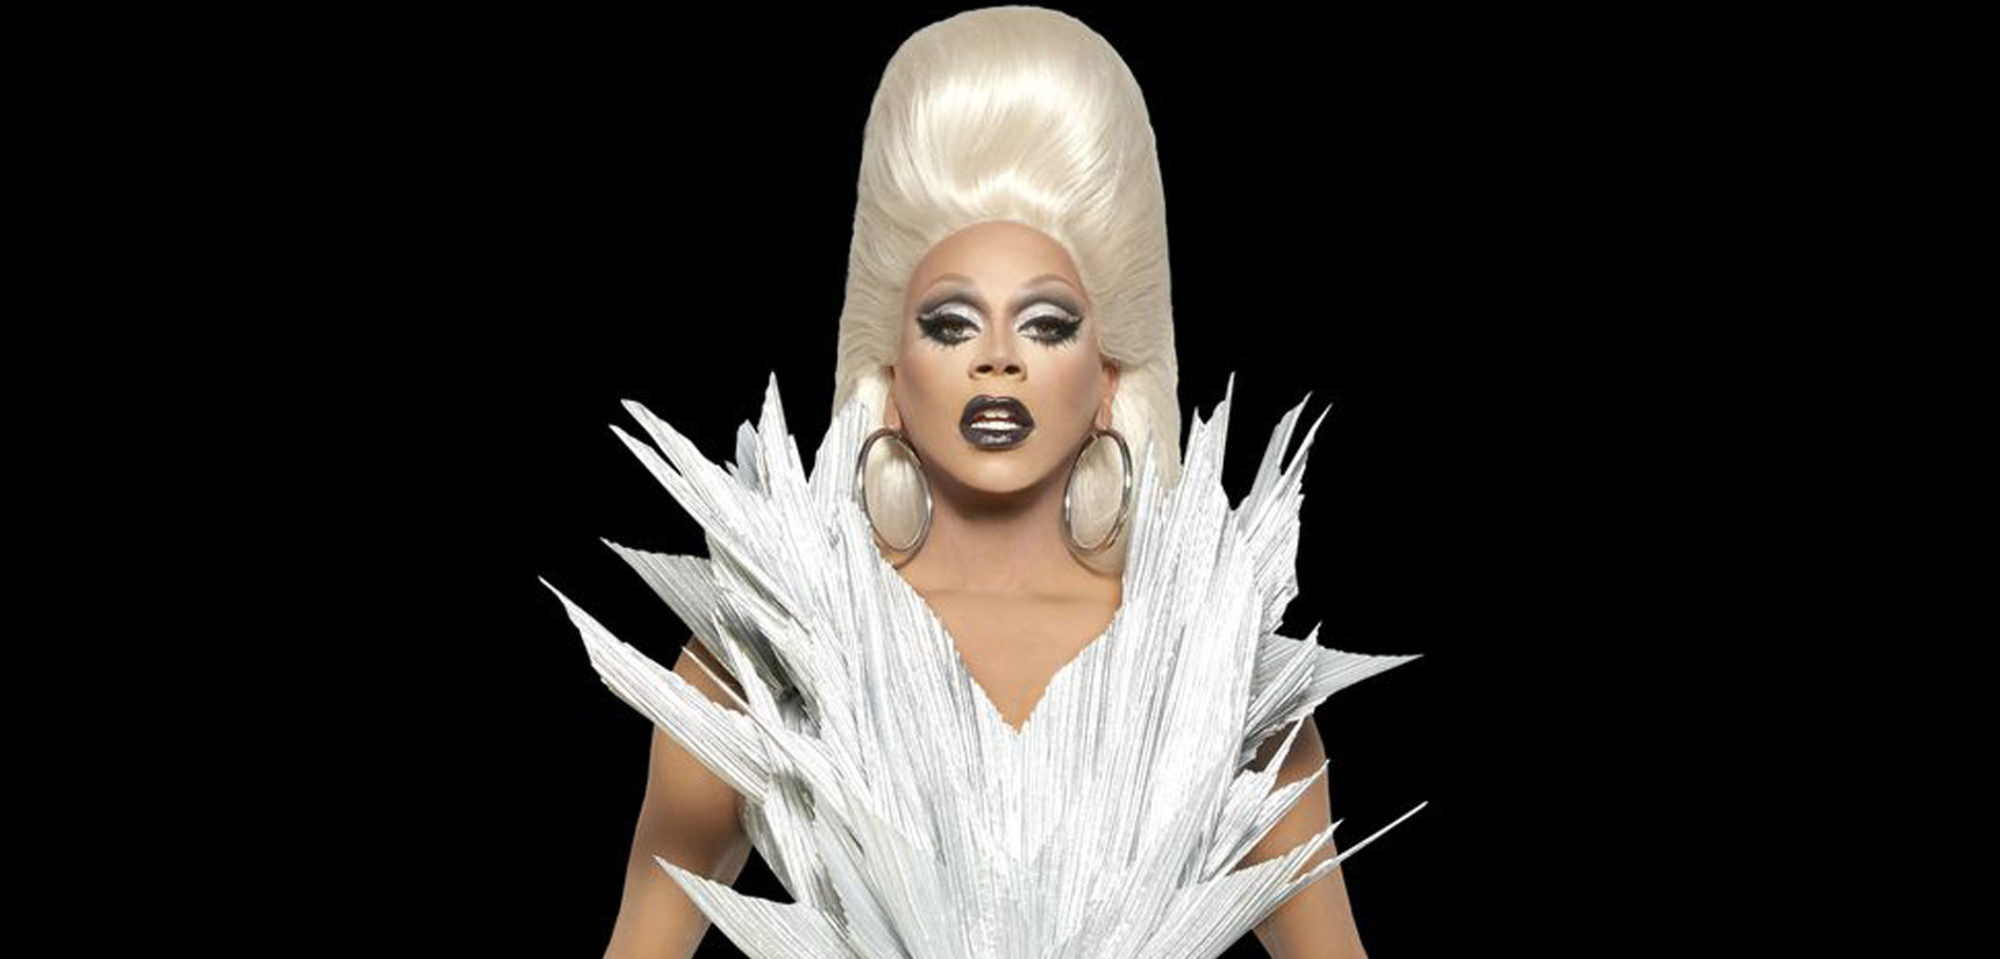 'Drag Race' Just Announced a Season 9 Release Date and a